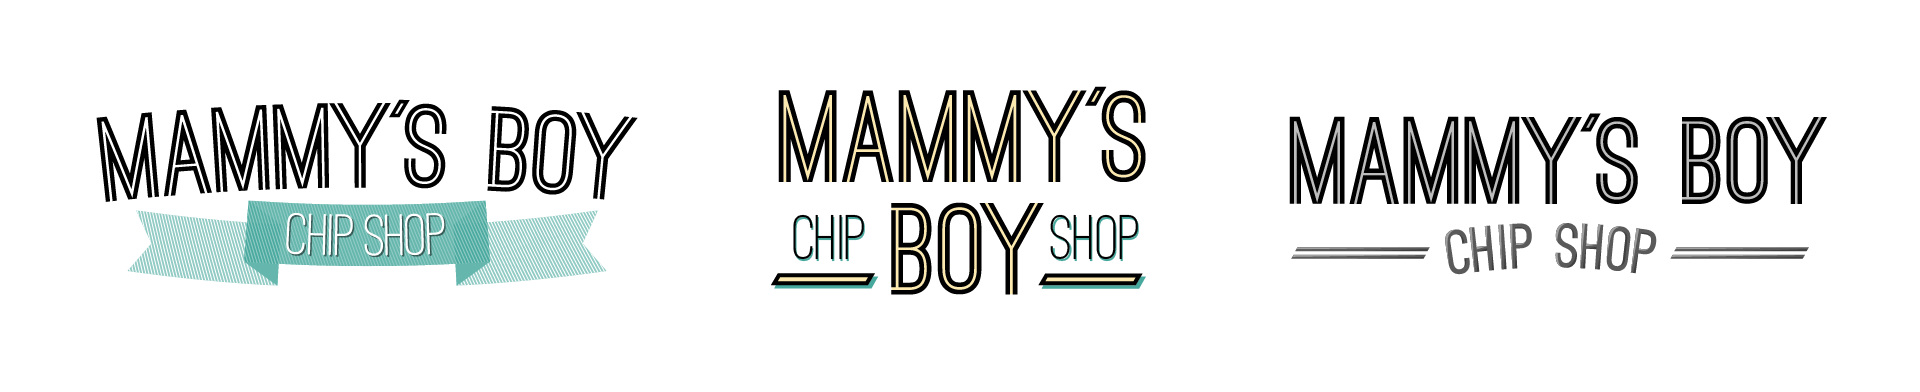 Mammy's Boy Logo Alternate Options